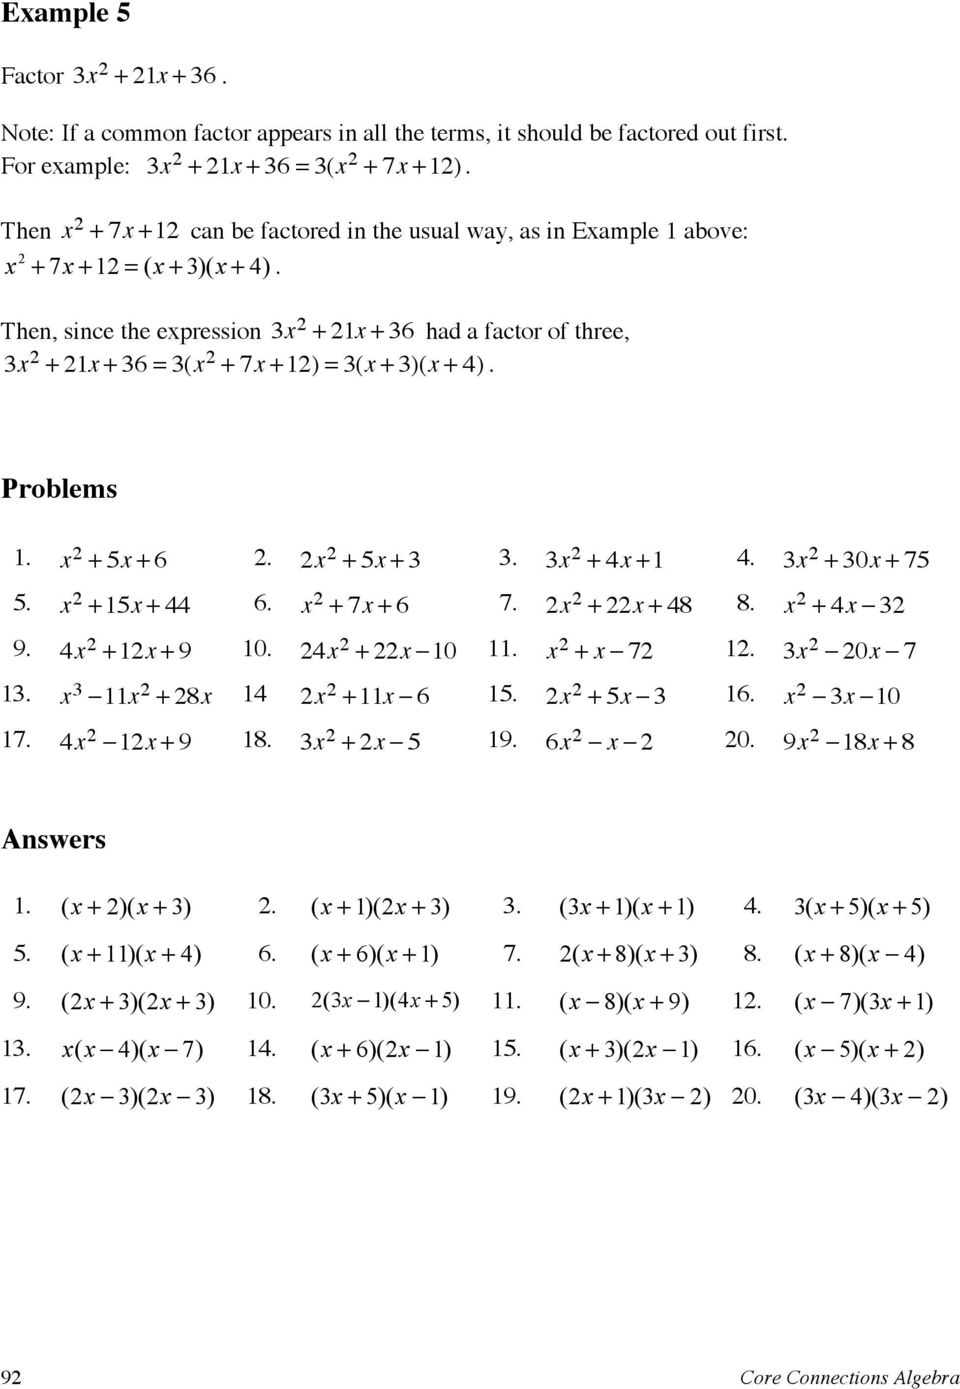 lesson 8-4 factoring ax2+bx+c problem solving answers